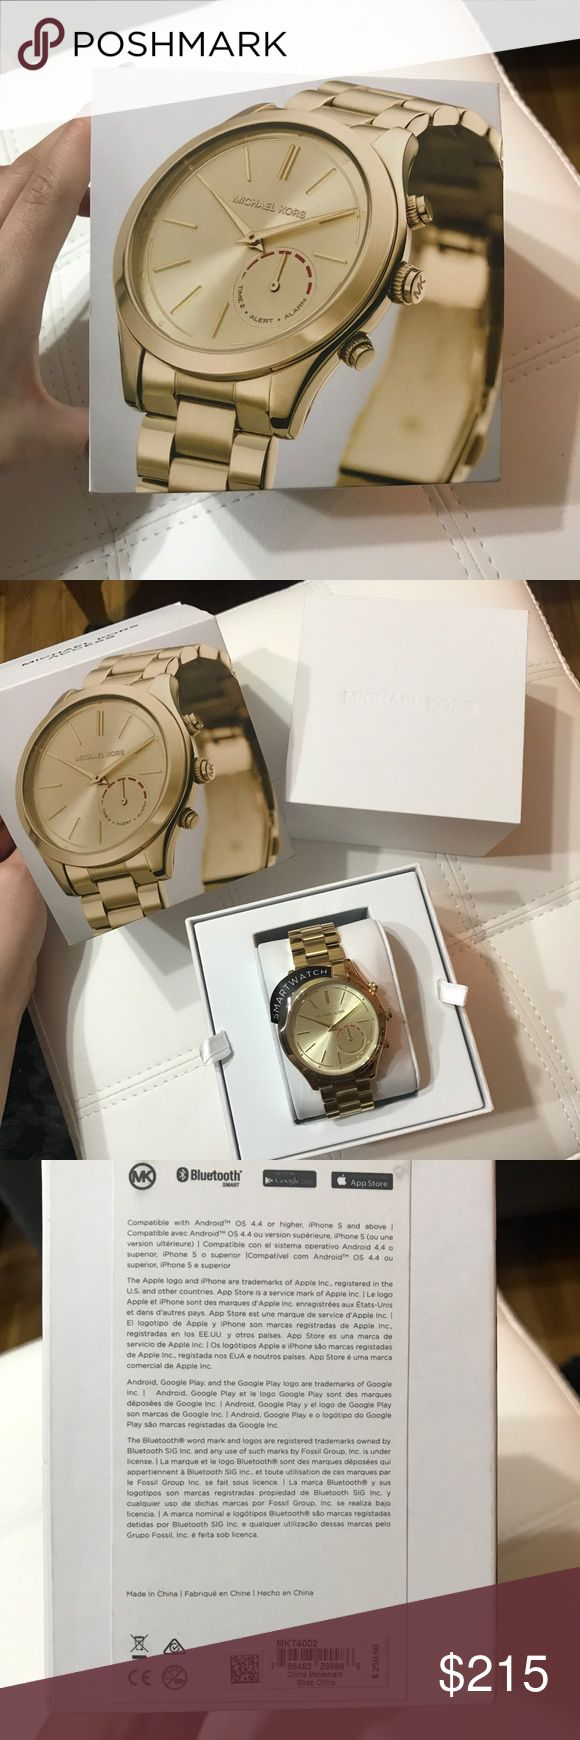 Michael Kors Slim Runway Gold Hybrid Smartwatch Michael Kors wearable technology, a trendy hybrid smart watch that will still keep you connected! Details: Brand new, never worn  Compatible with iPhone and Android 42mm case  Auto update time and date  Filtered notifications  Built in activity tracker  No charging necessary  Water resistant up to 3ATM or 30 meters  Adjustable metal band Michael Kors Accessories Watches